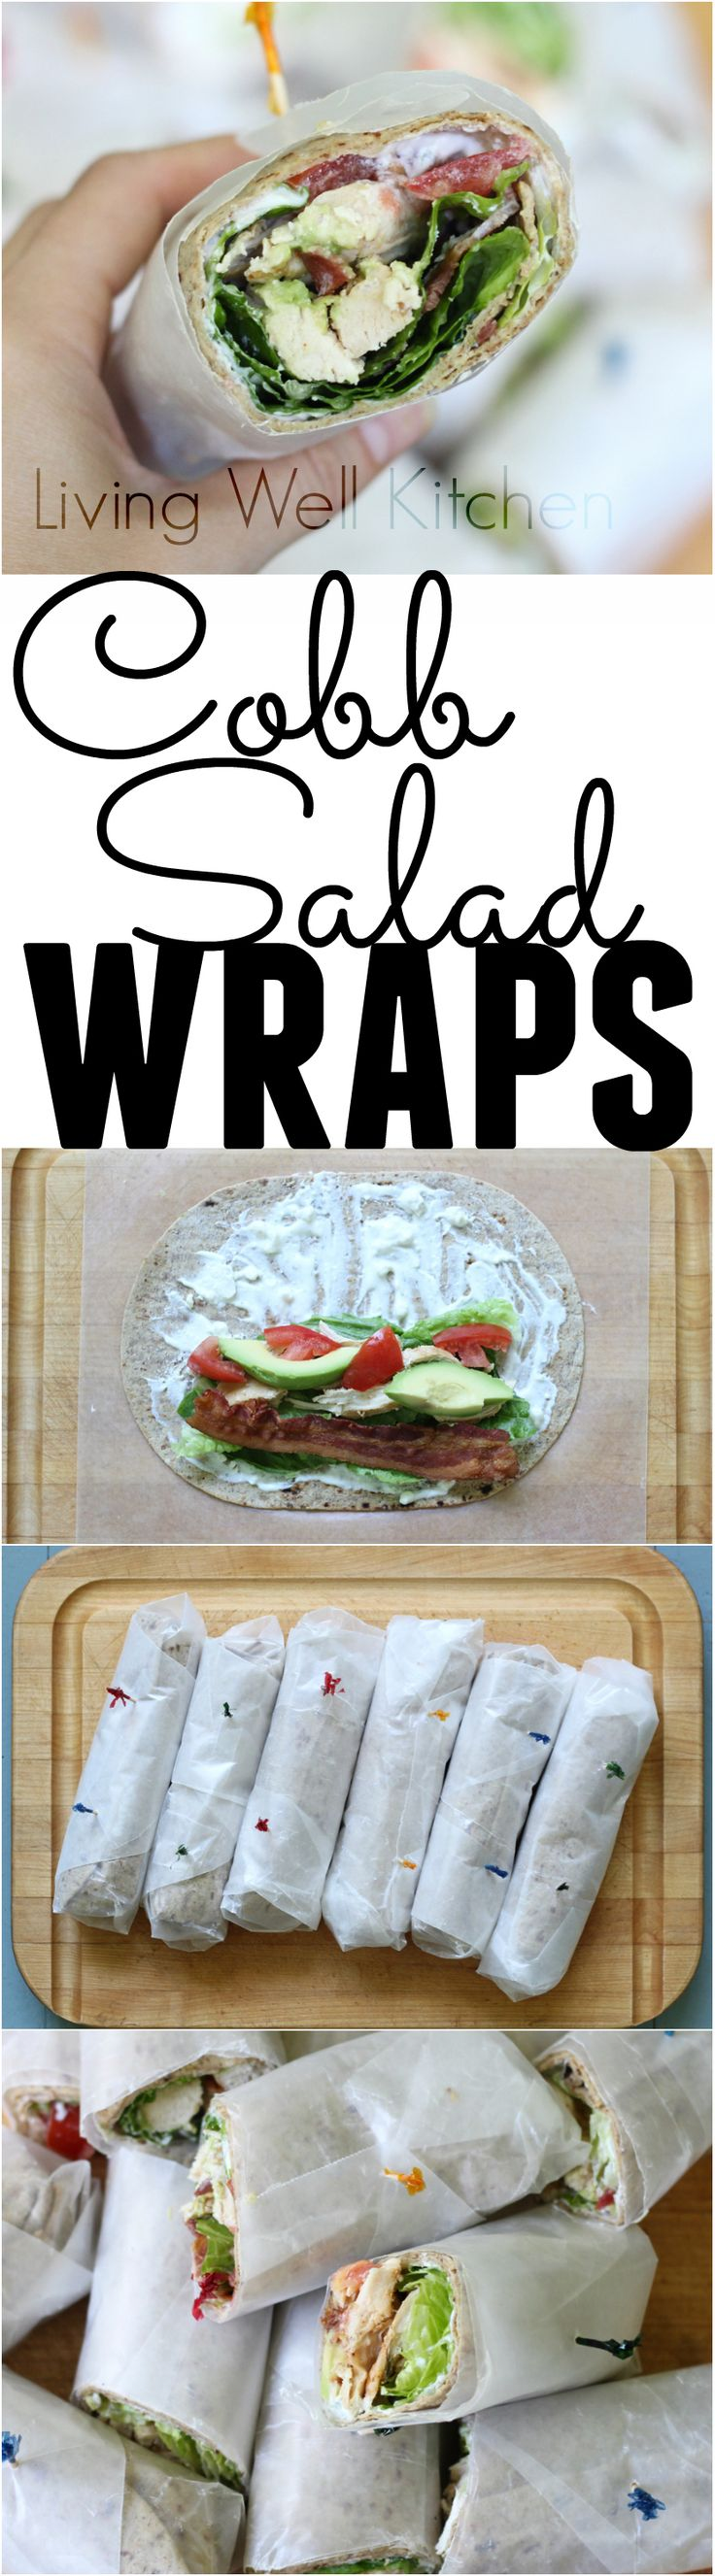 Cobb Salad Wraps from @memeinge have all the goodies of a Cobb Salad but are neatly wrapped for portability and easy eating. These are great for a make-ahead, filling & tasty lunch.